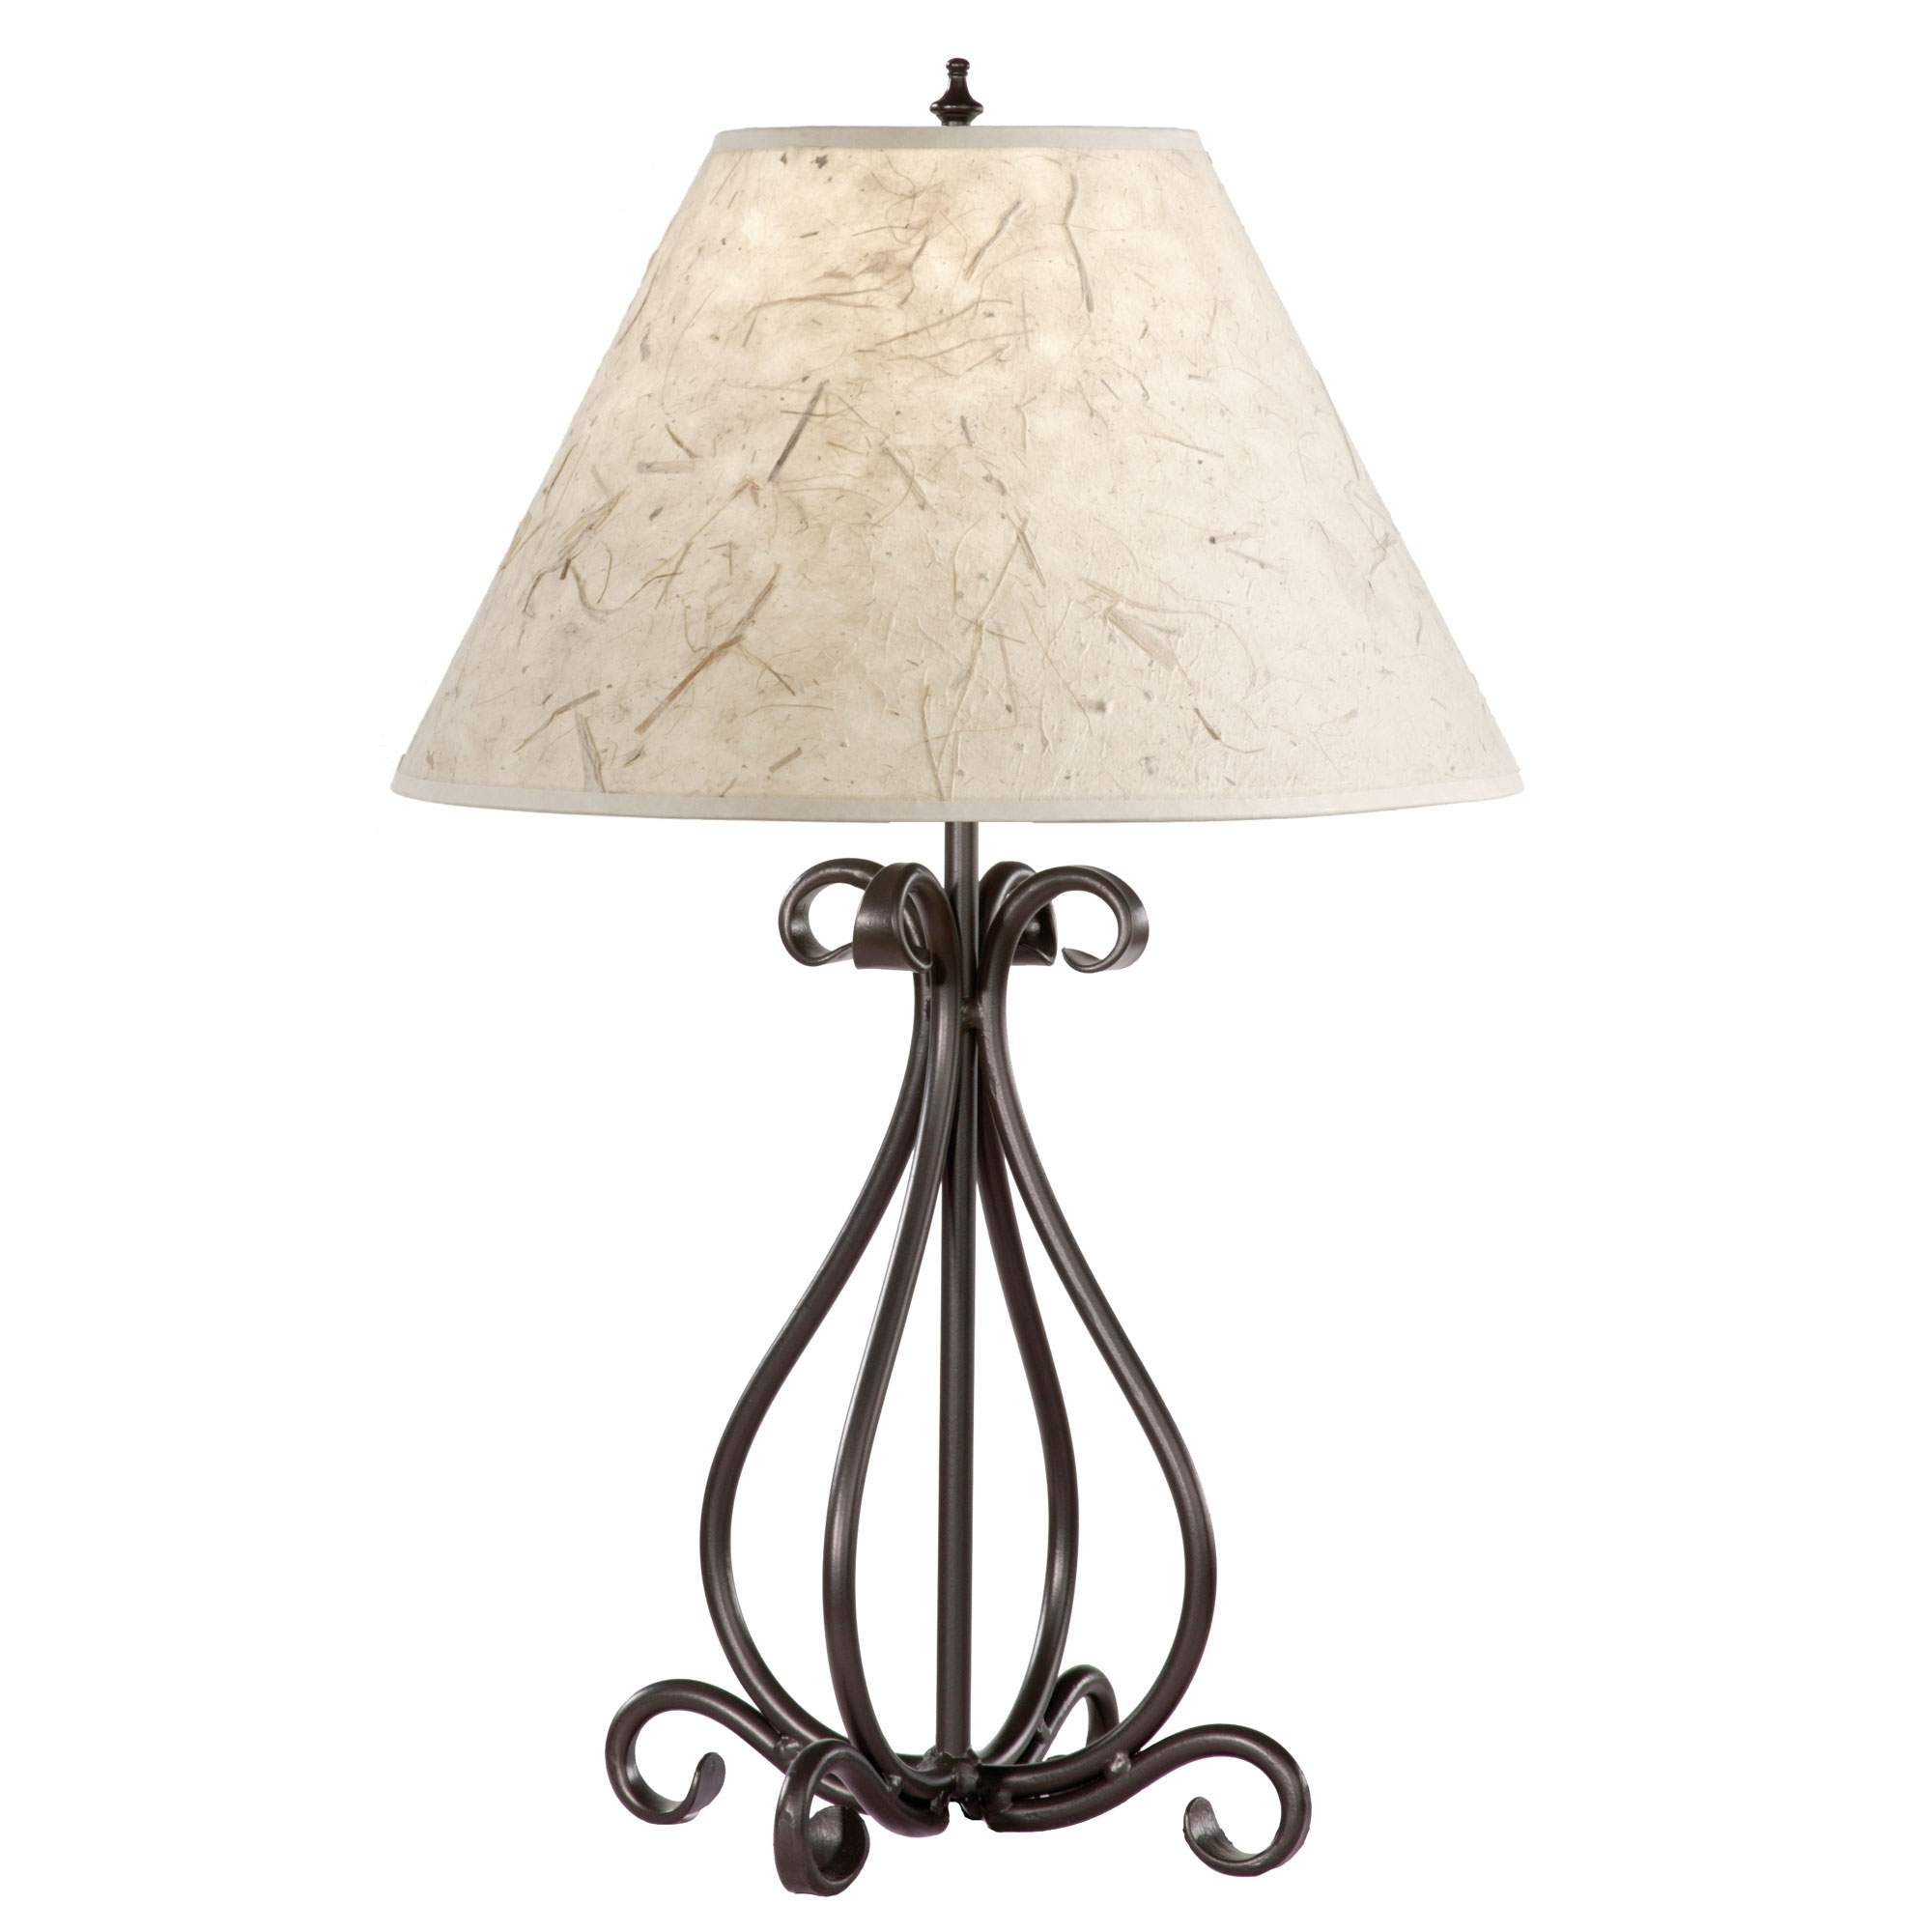 Wrought Iron Living Room Table Lamps Pertaining To 2019 10 Important Facts That You Should Know About Wrought Iron (View 14 of 20)